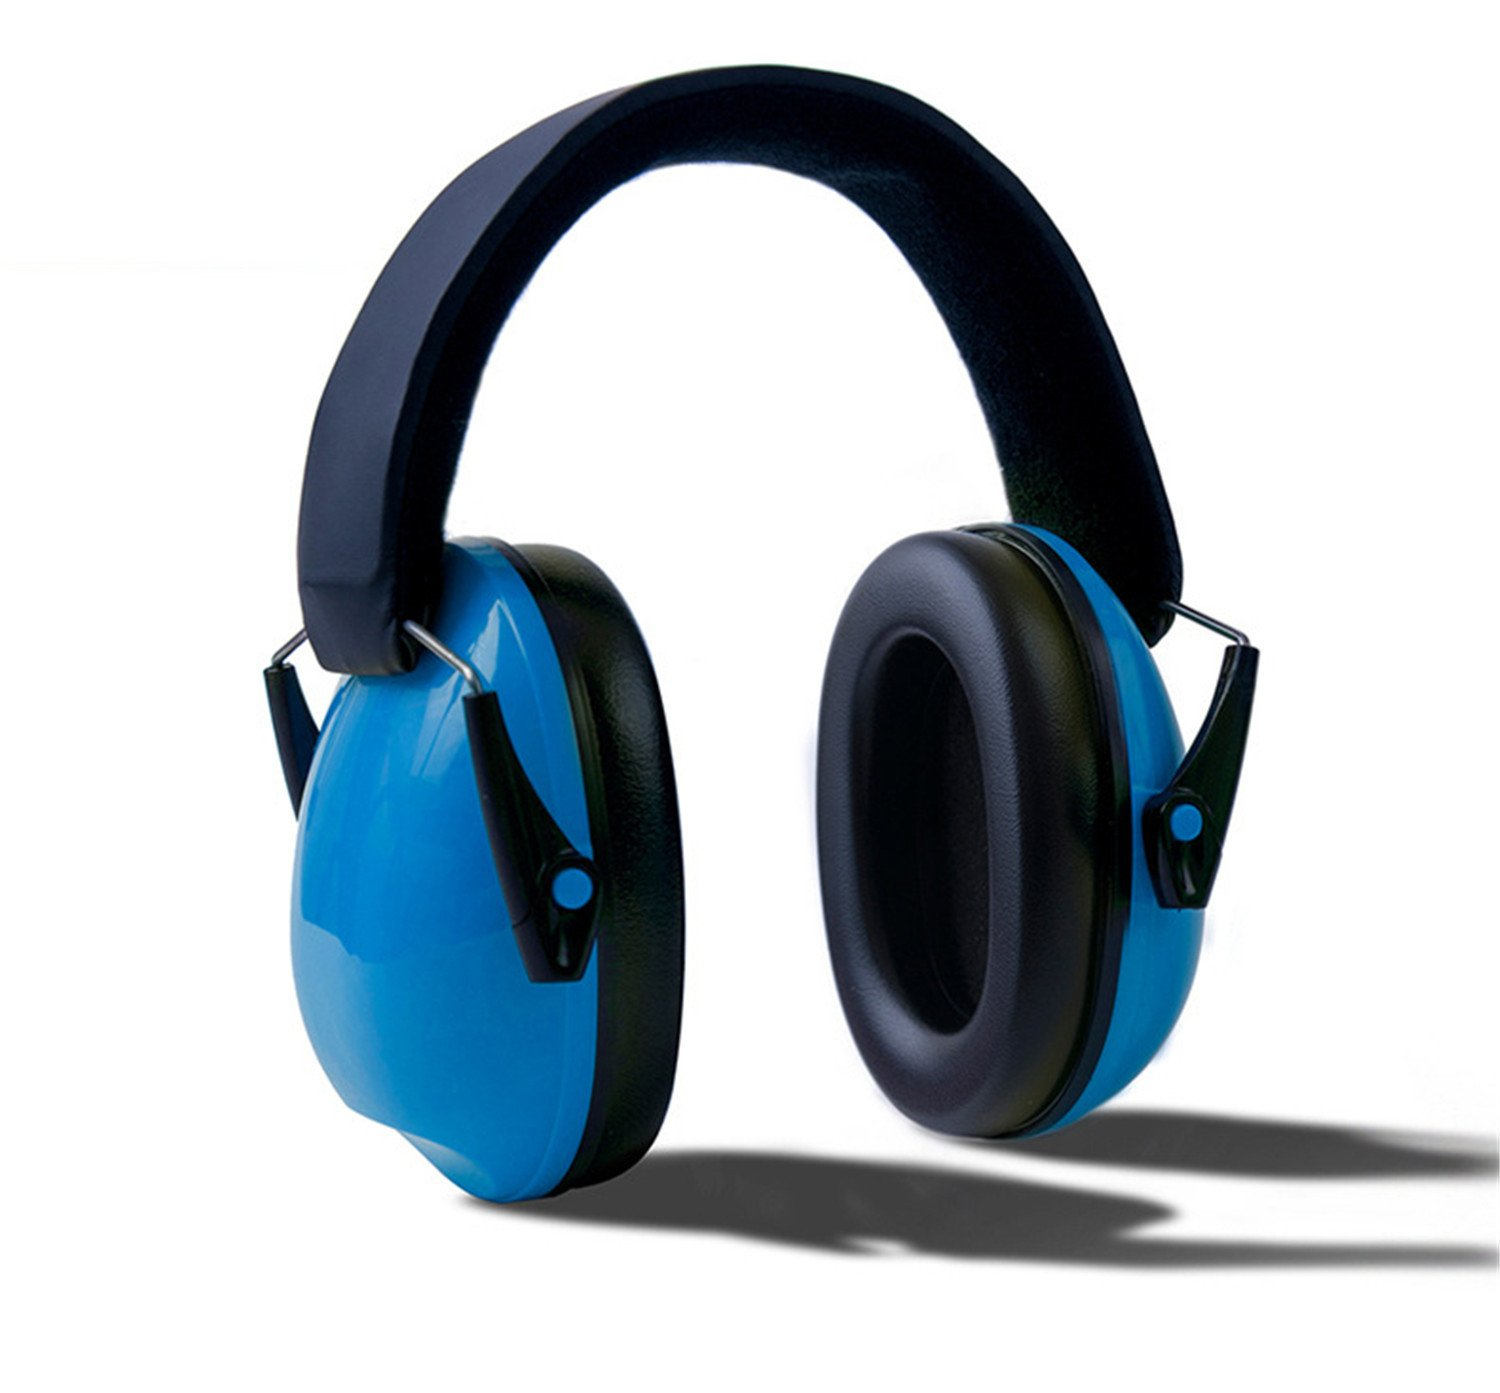 NYKKOLA Baby Earmuff Noise Reduction Noise Cancelling Headphone for Infant Autism Kids Toddlers Outdoor Safety Ear Protection, Blue XGEARMUFF-blue